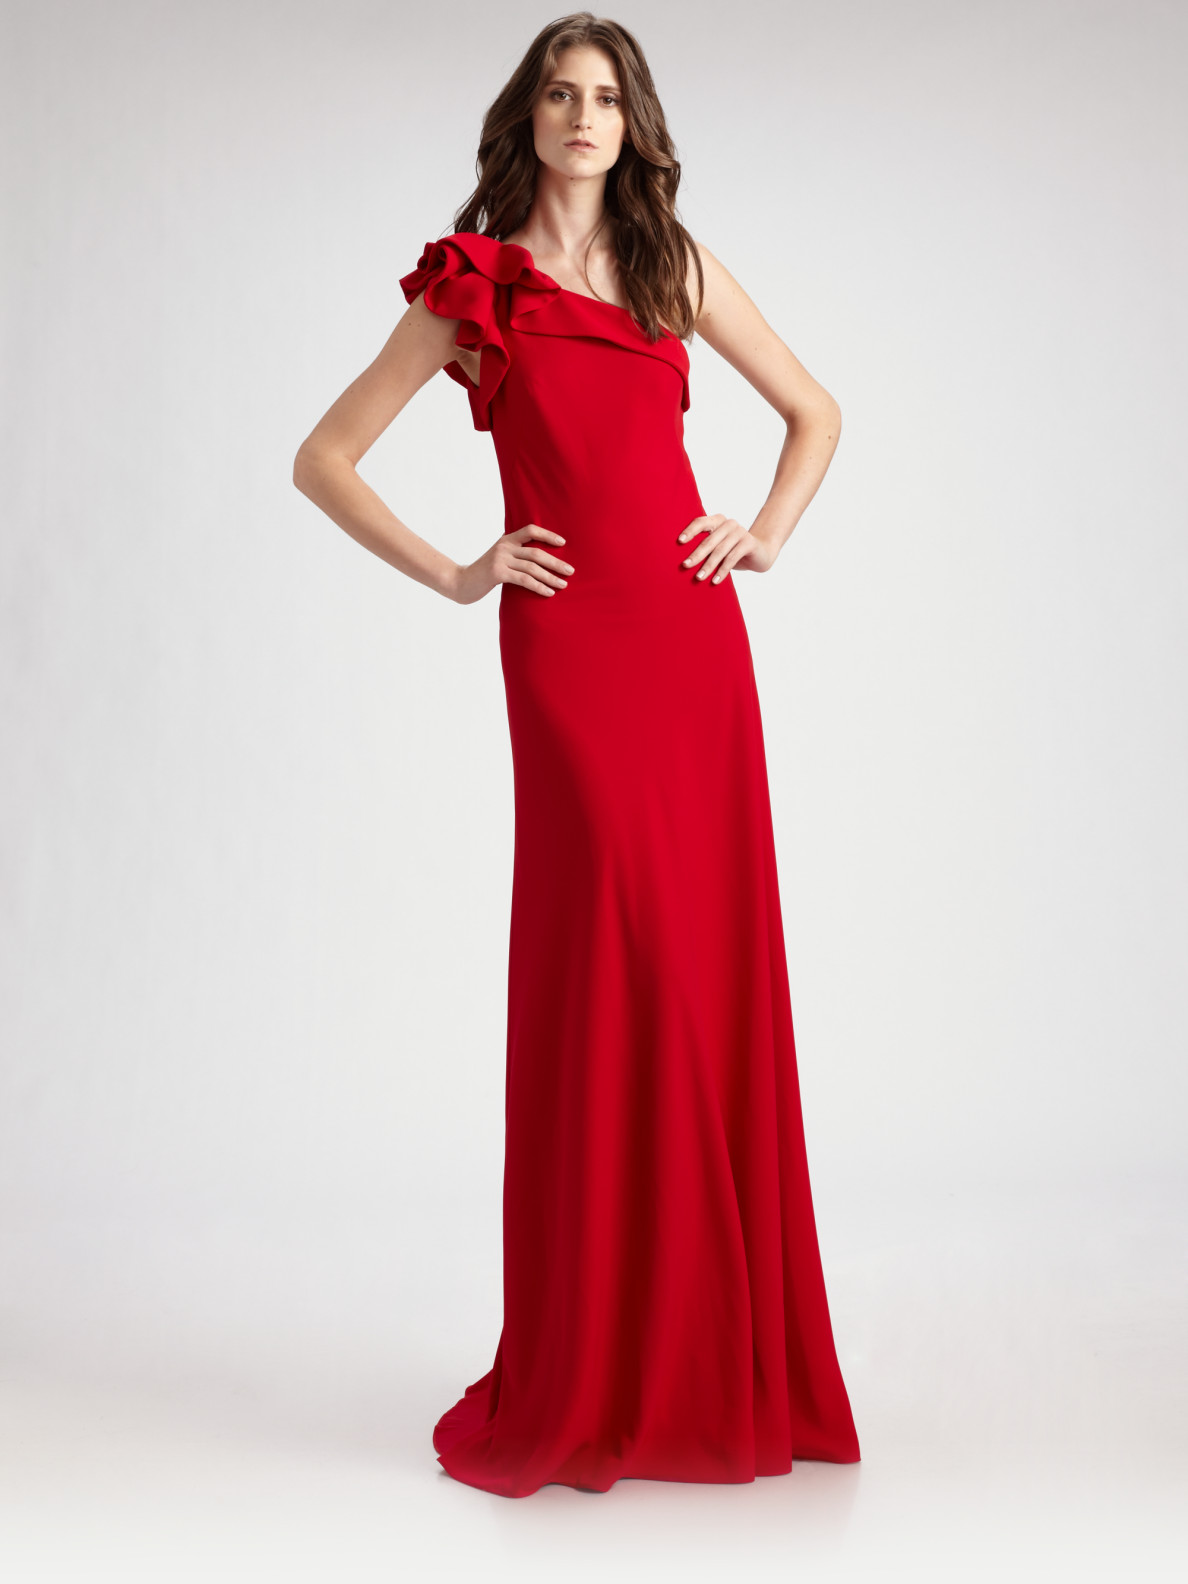 Lyst - Carmen Marc Valvo One Shoulder Crepe Gown in Red